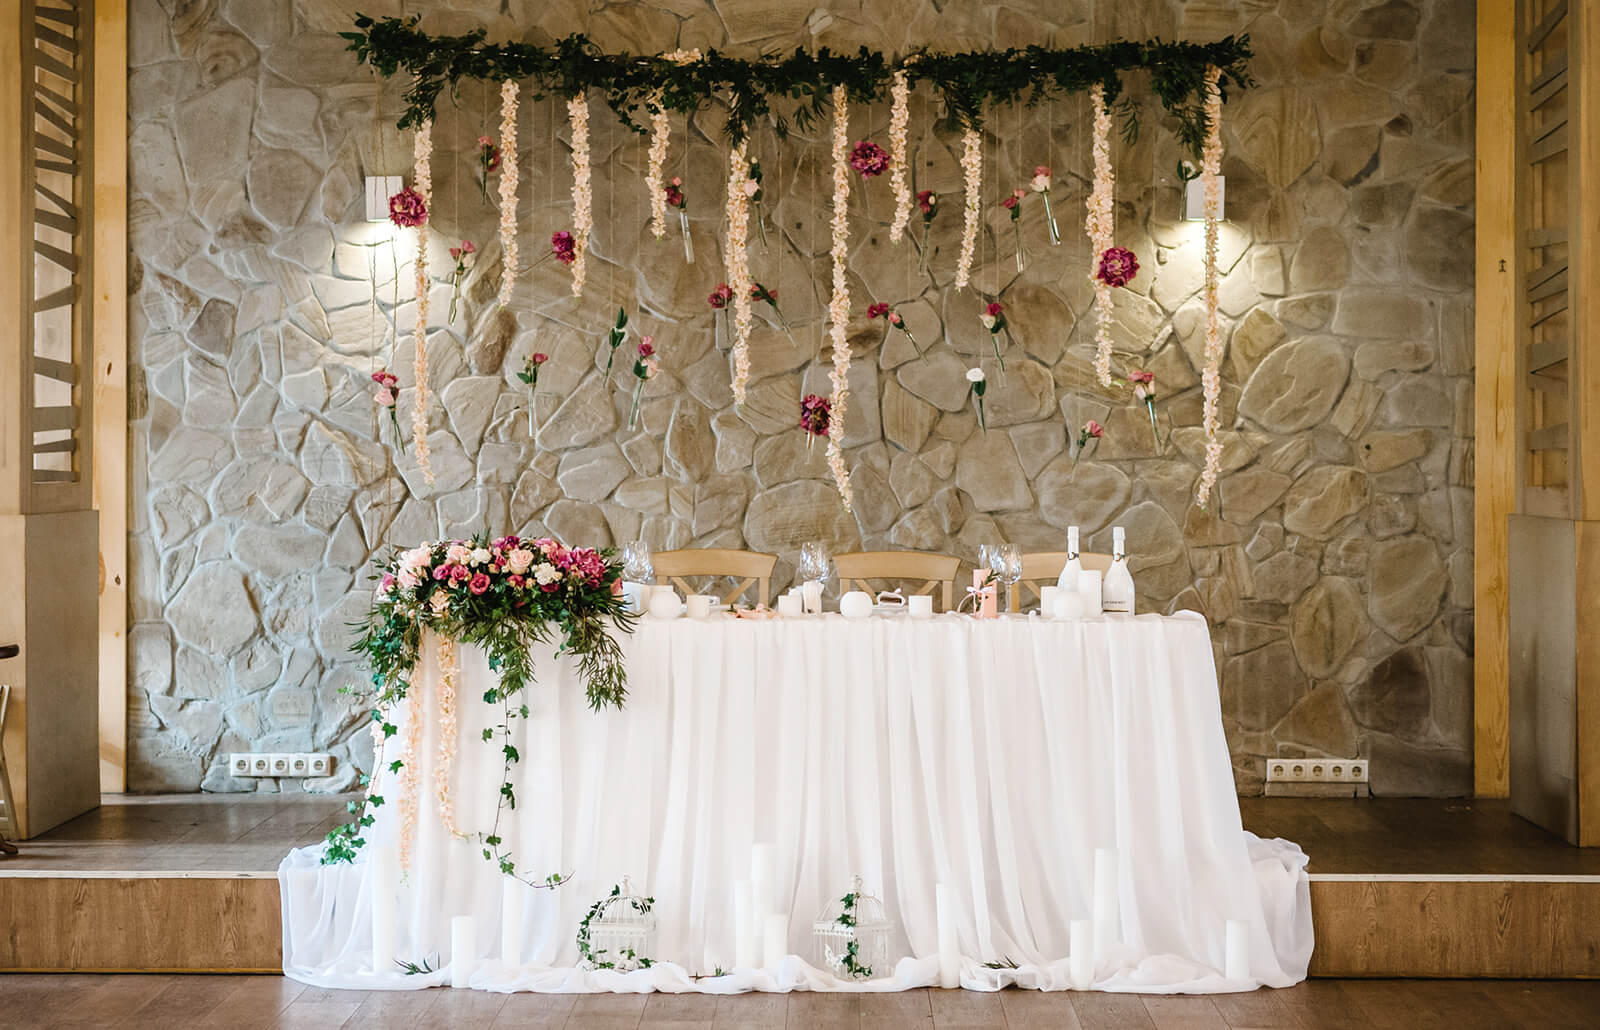 Pictures of Head Table Decorations | LoveToKnow